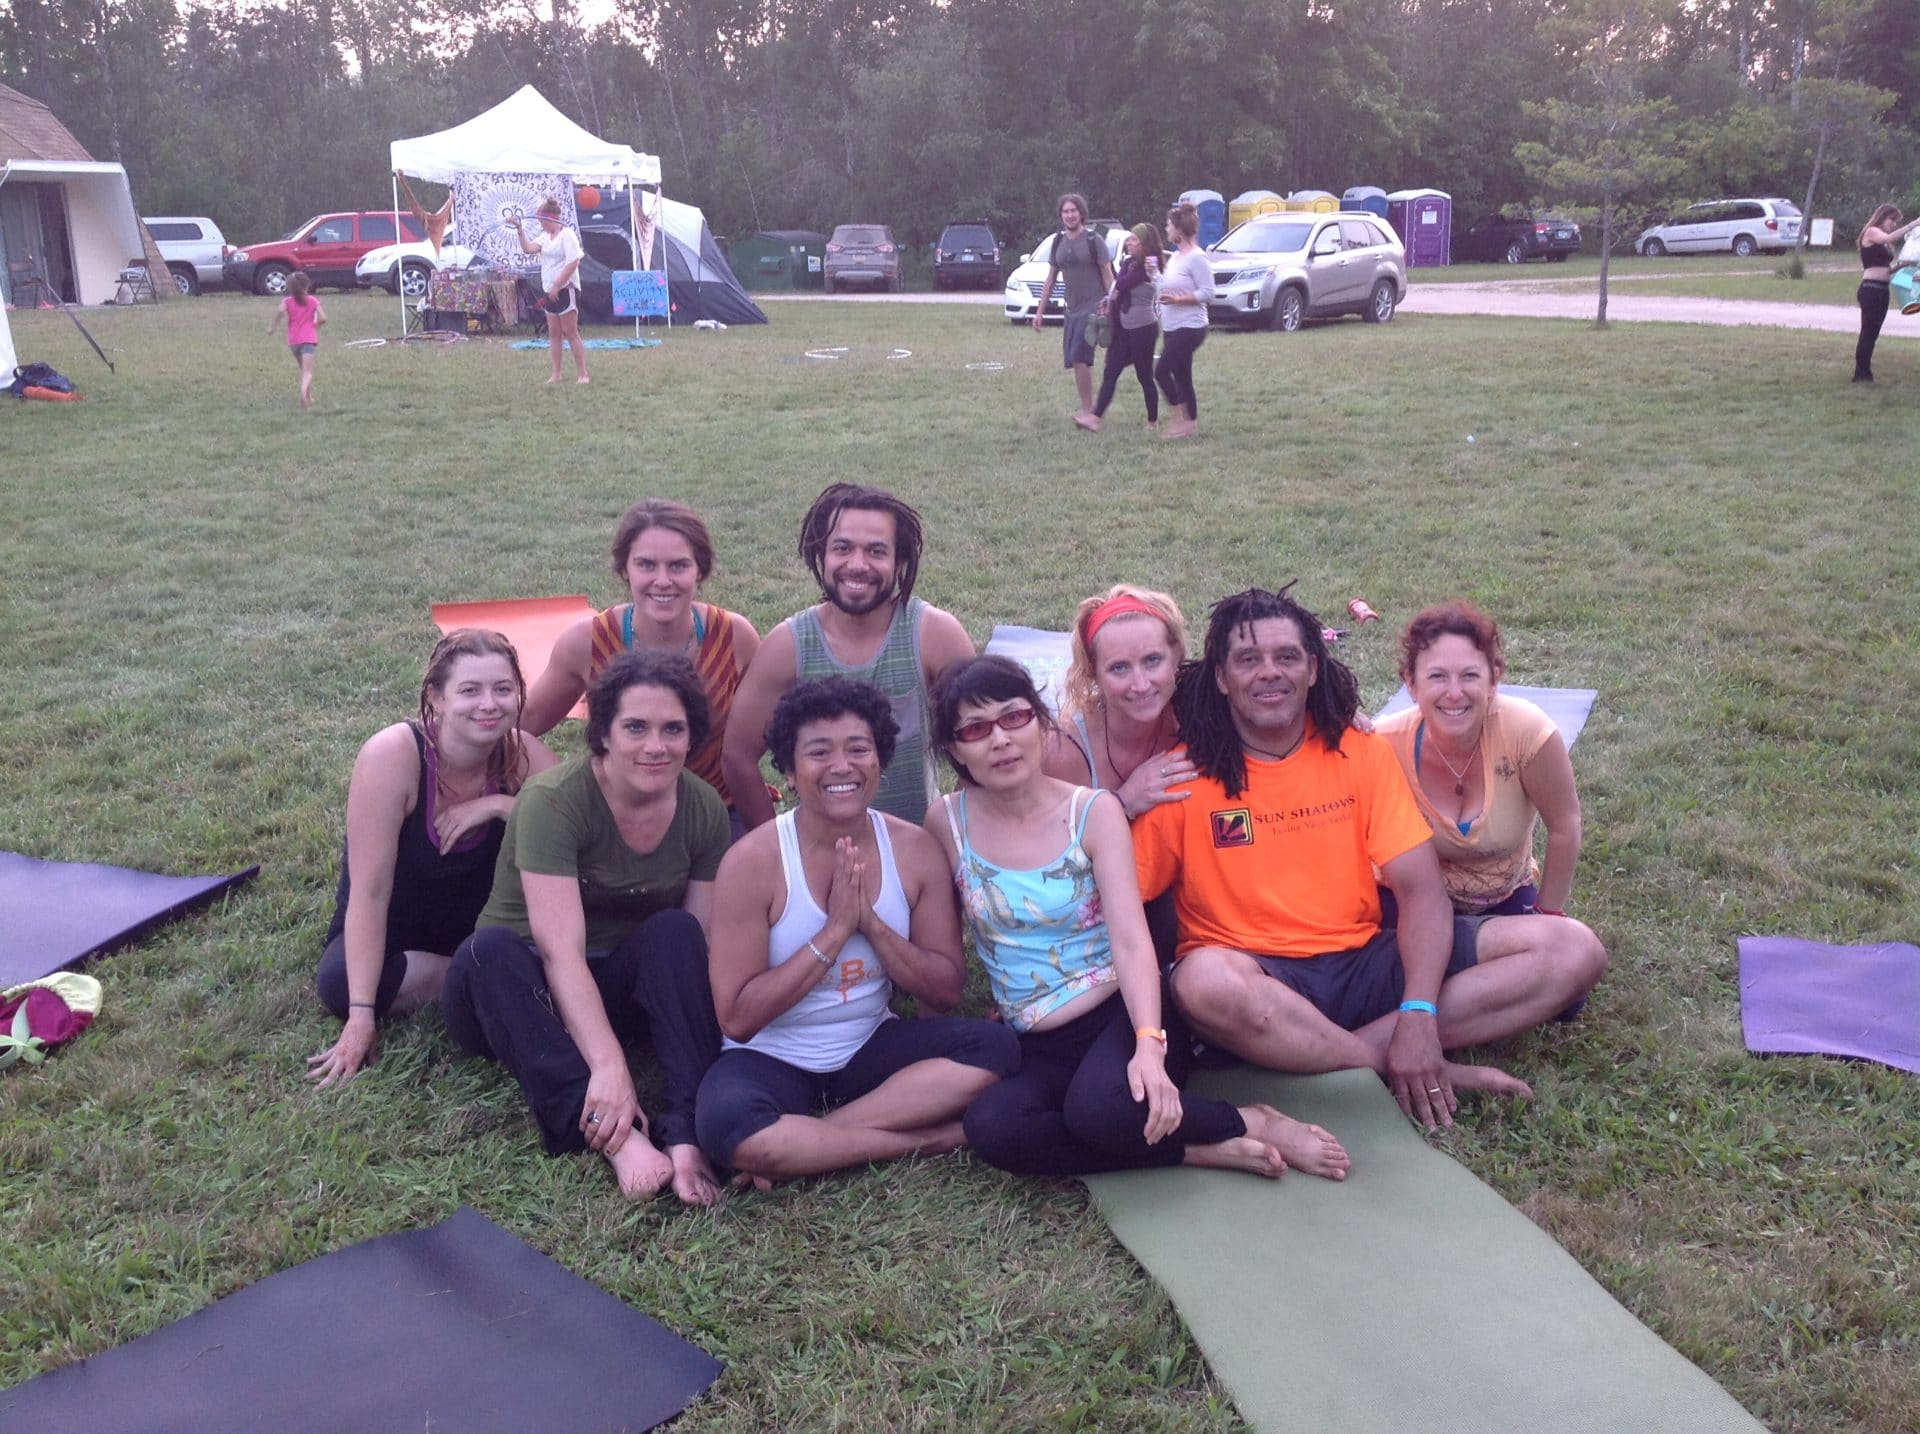 Community and yoga at Michigan Yoga Fest